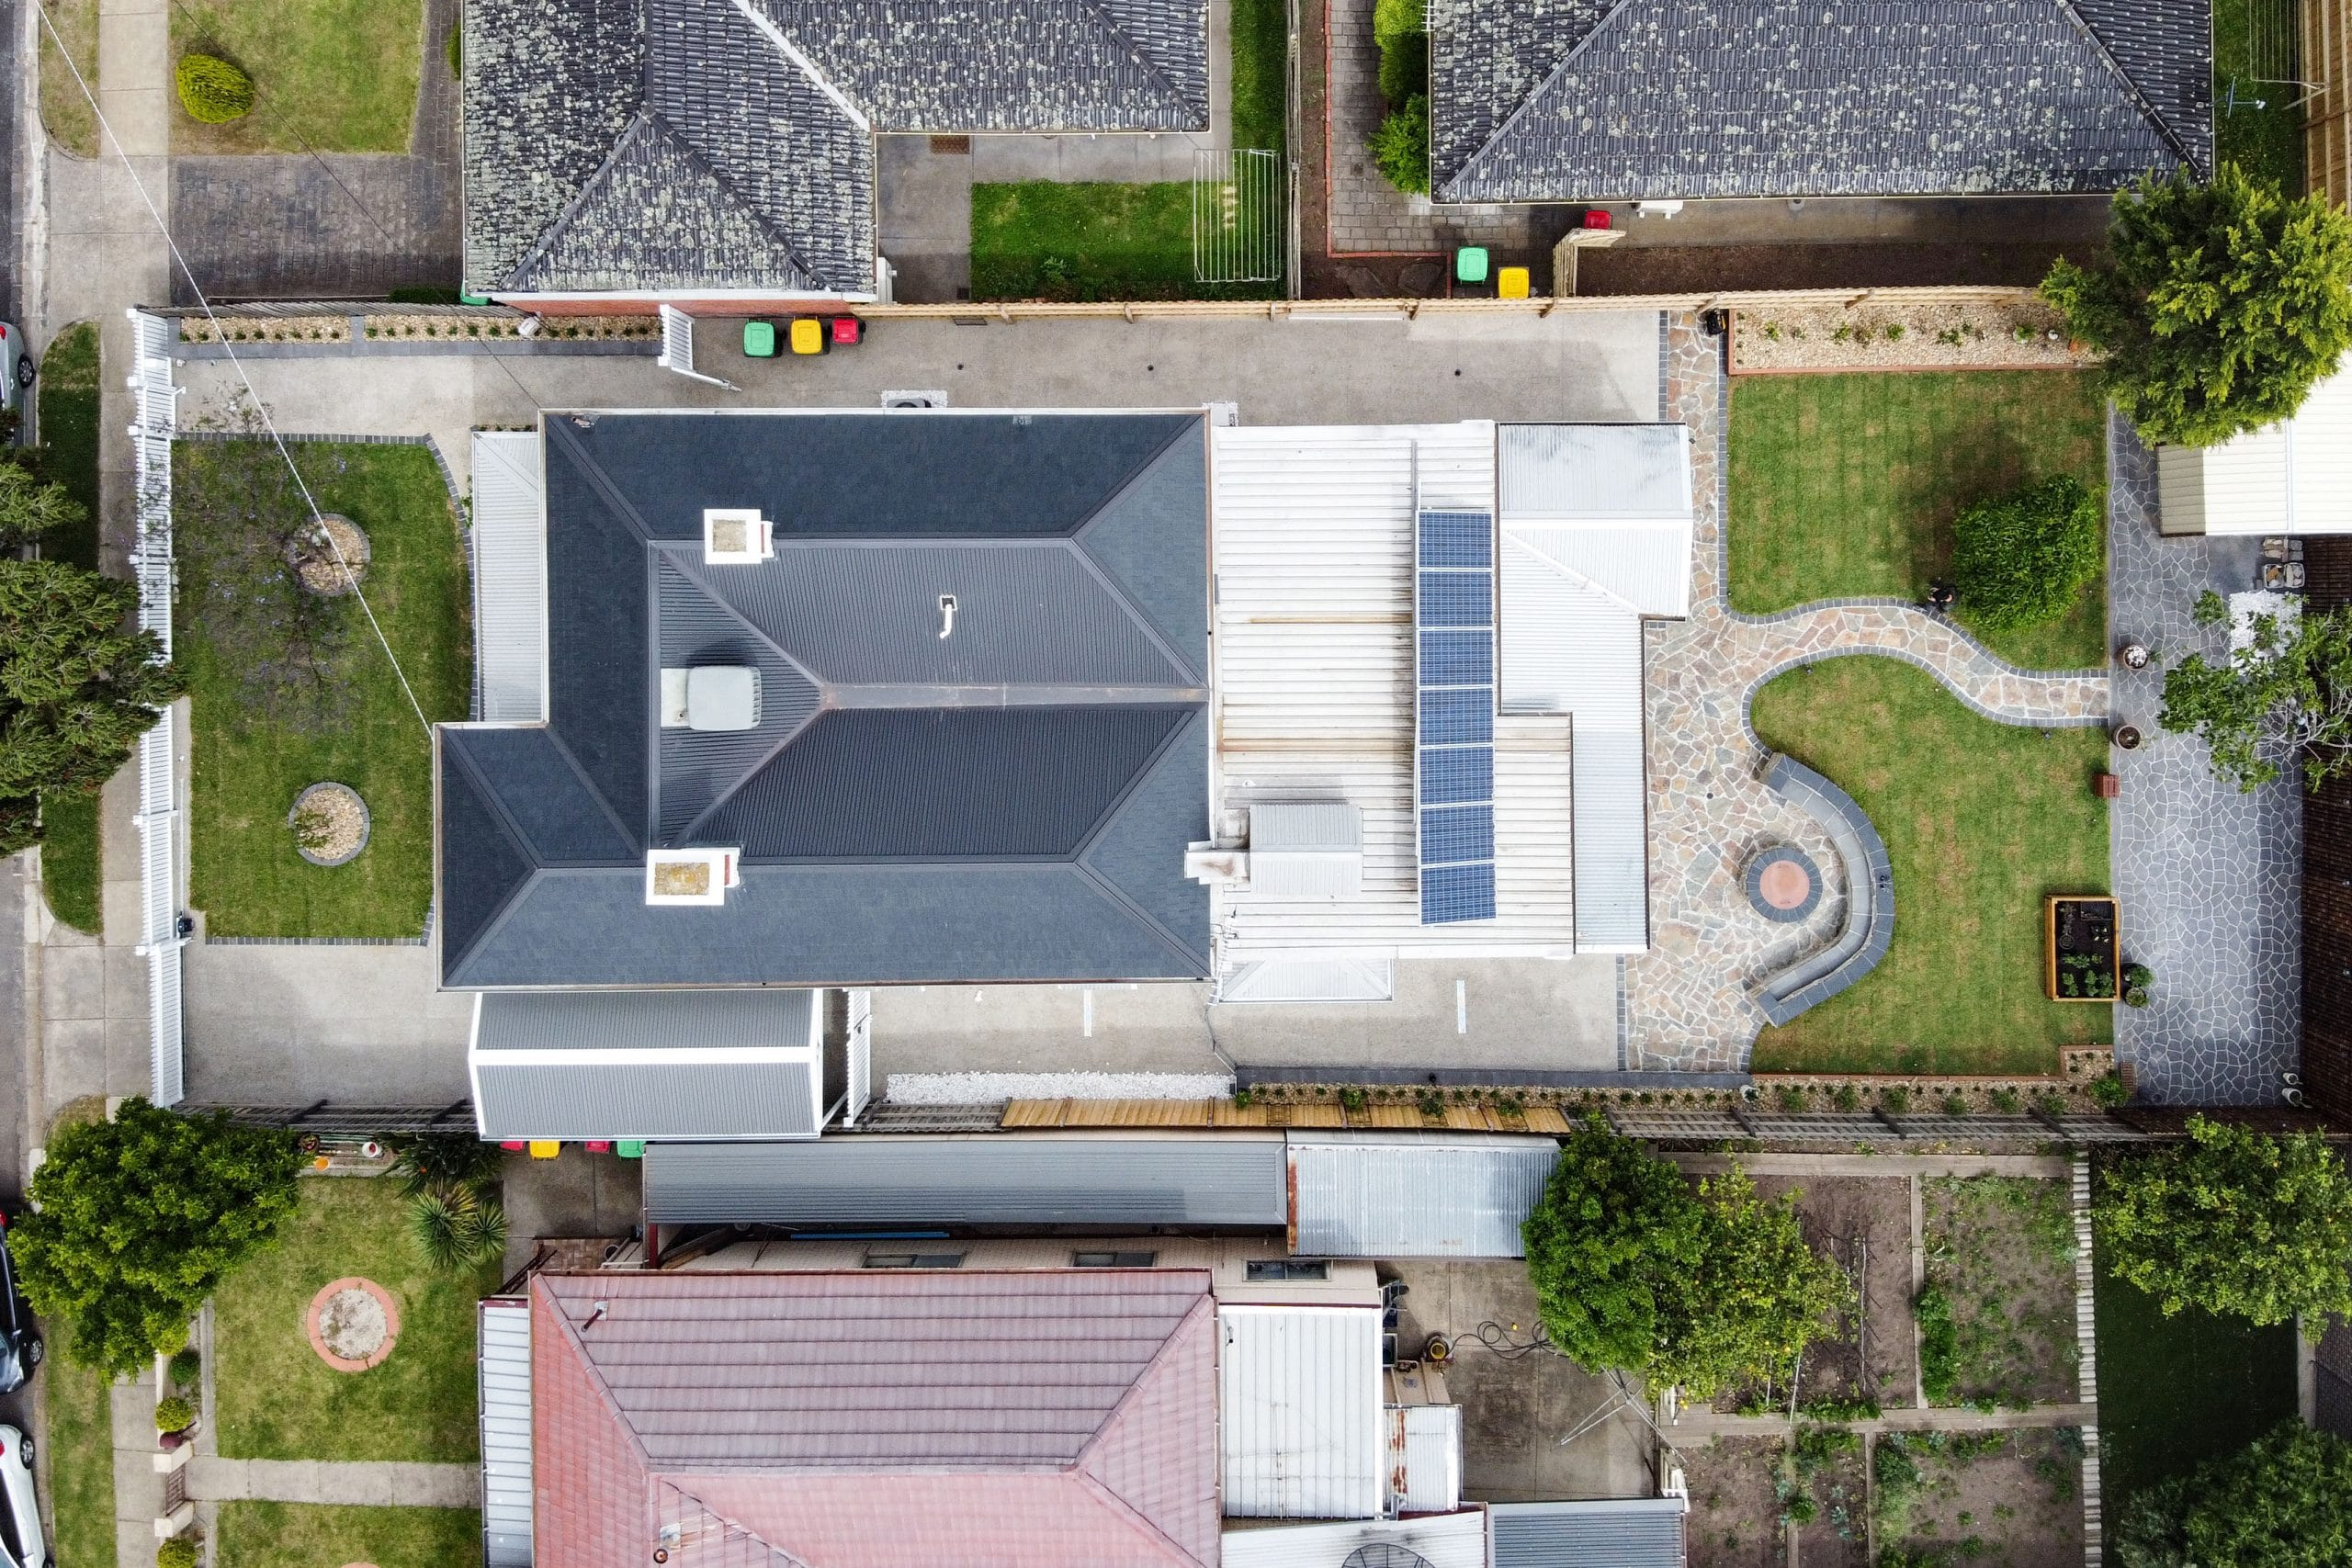 L273 - Ascot Vale - an overhead shot of a house